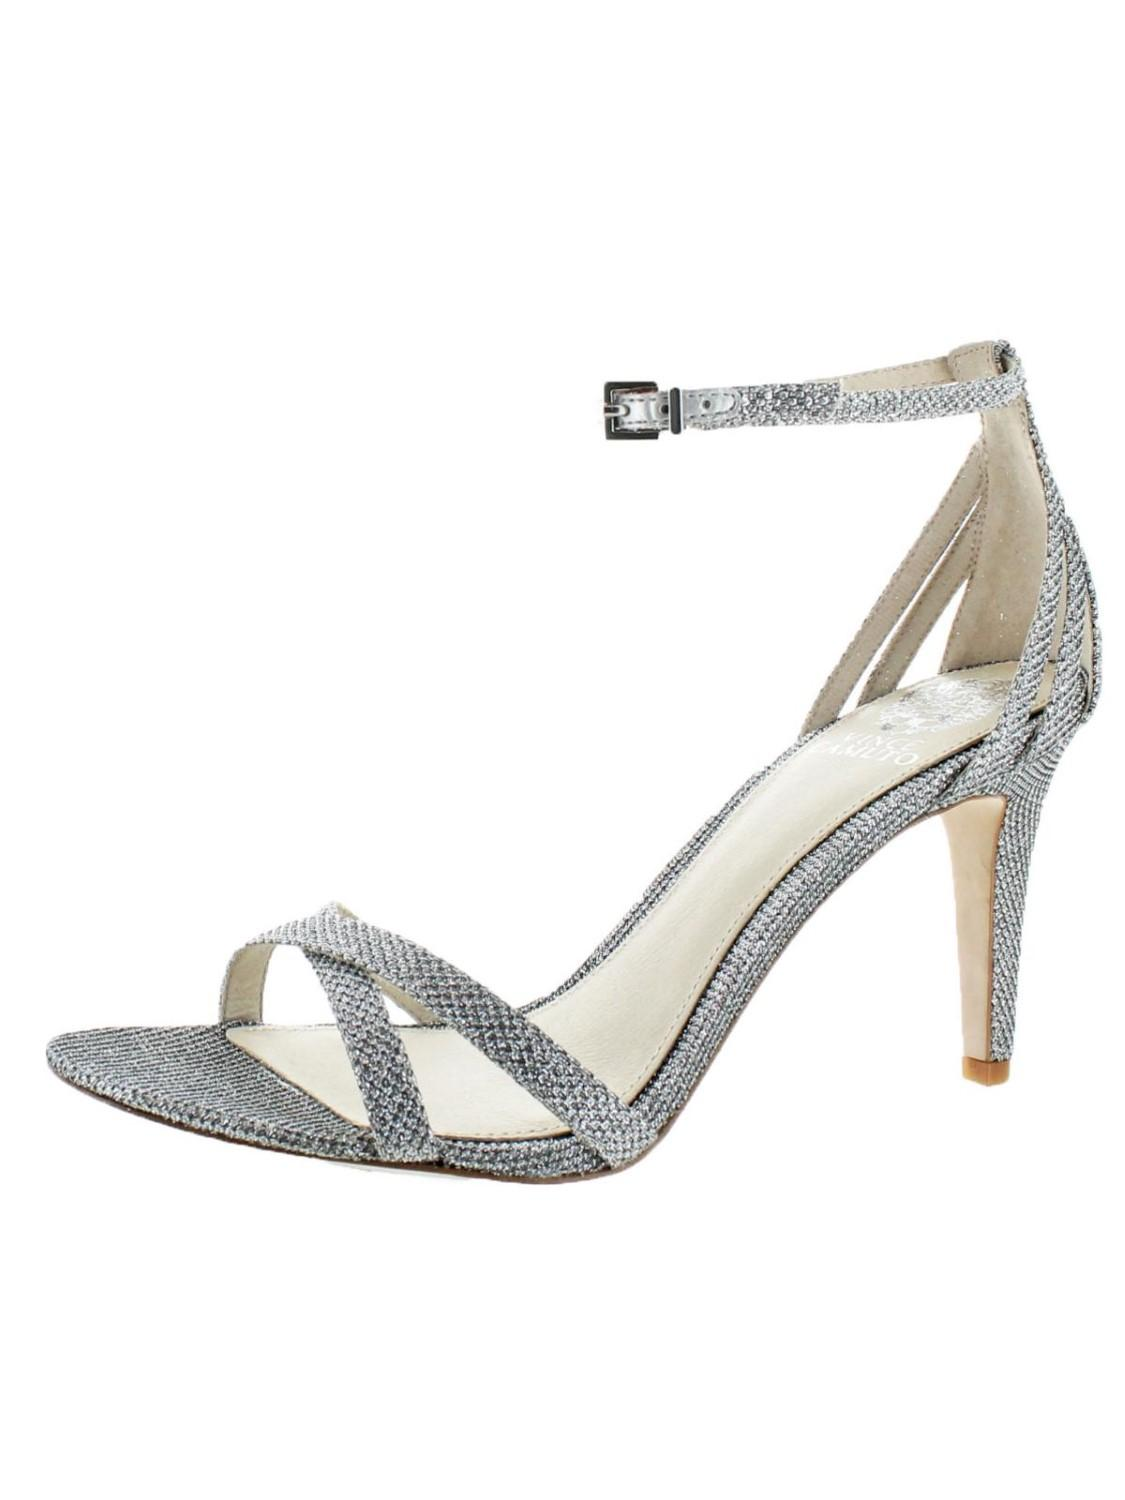 92880b3398e4 Vince Camuto. Women s Metallic Camron Leather Open Toe Criss-cross Dressy Sandal  Shoes